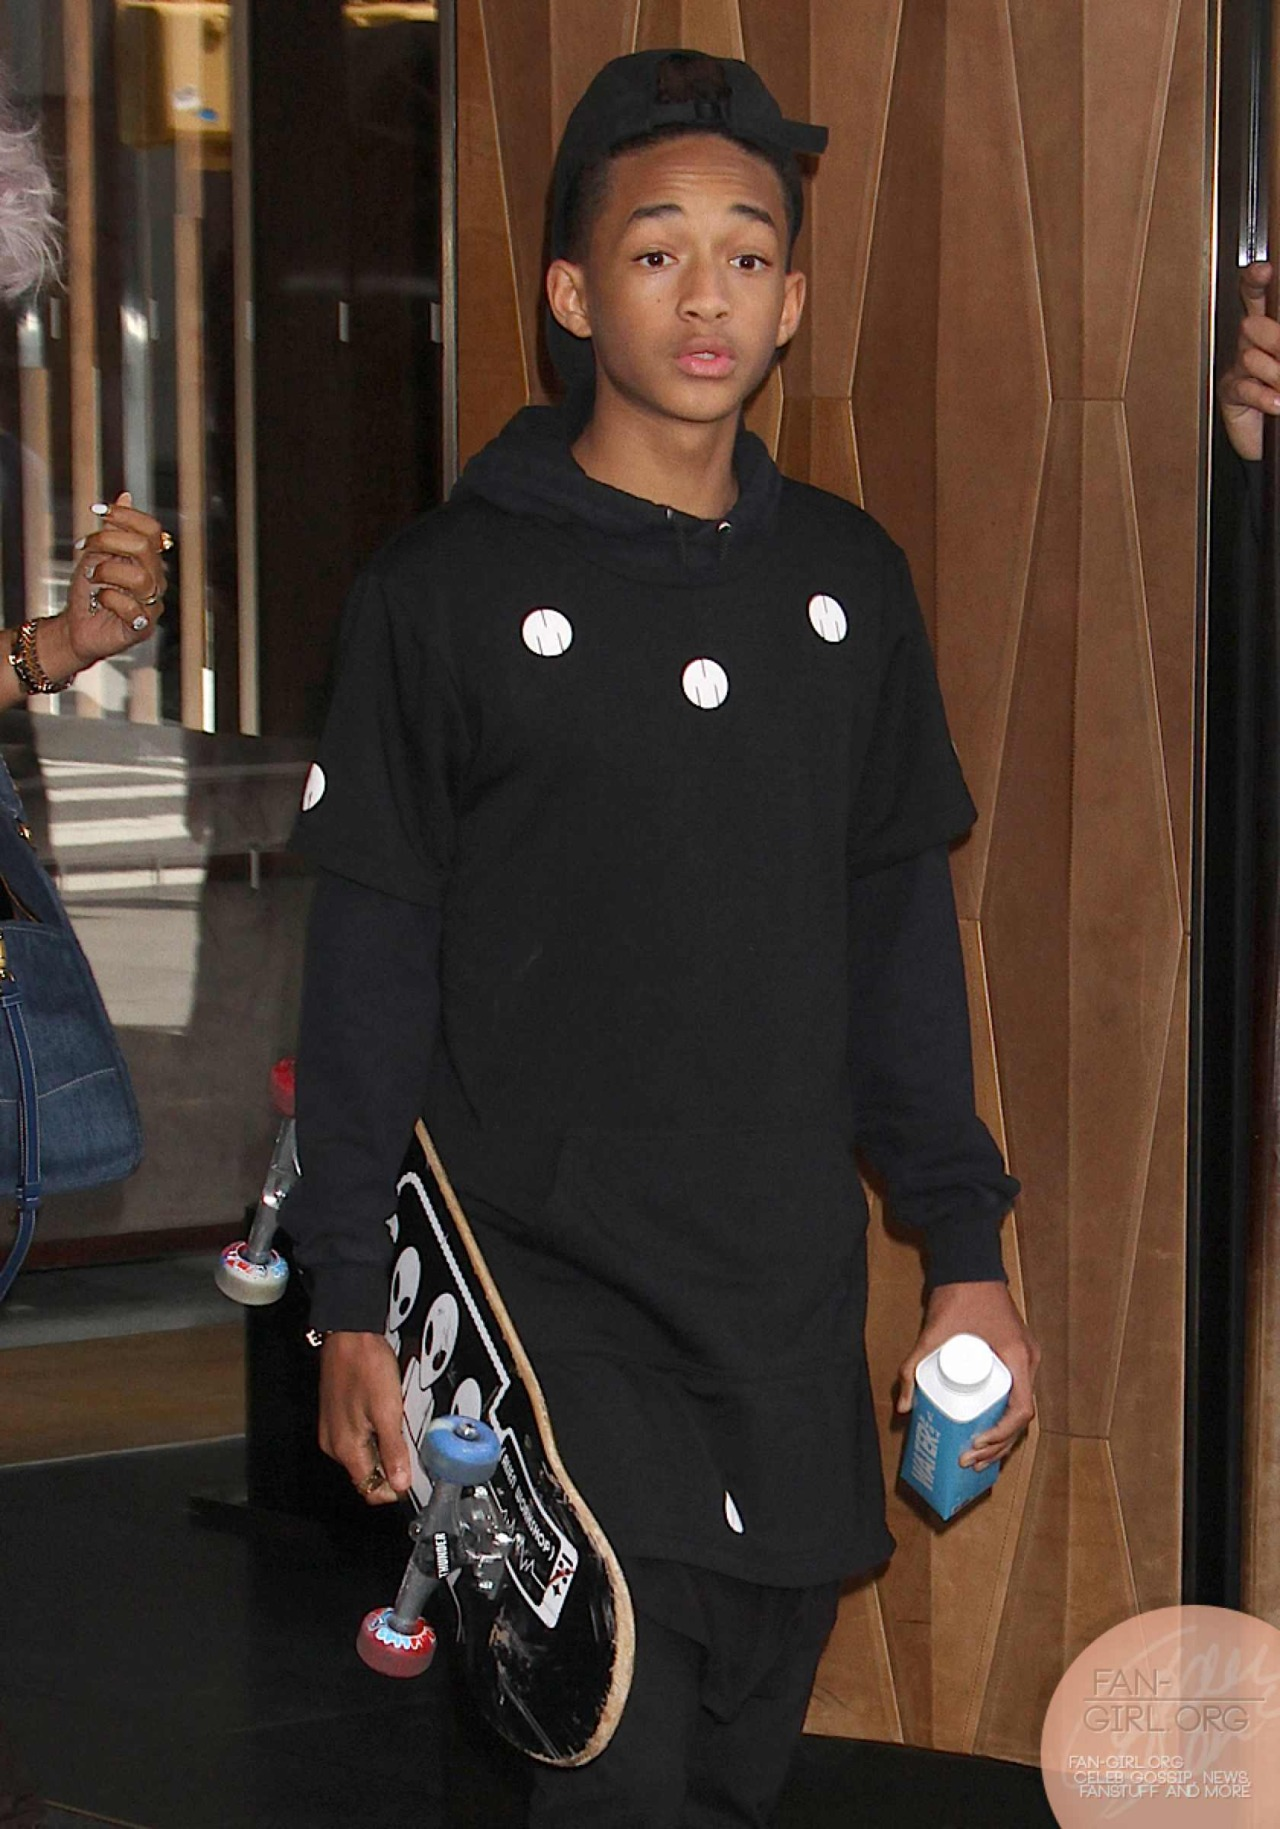 fan-girlblog:  Jaden Smith out and about in nyc more at http://fan-girl.org/?p=1486